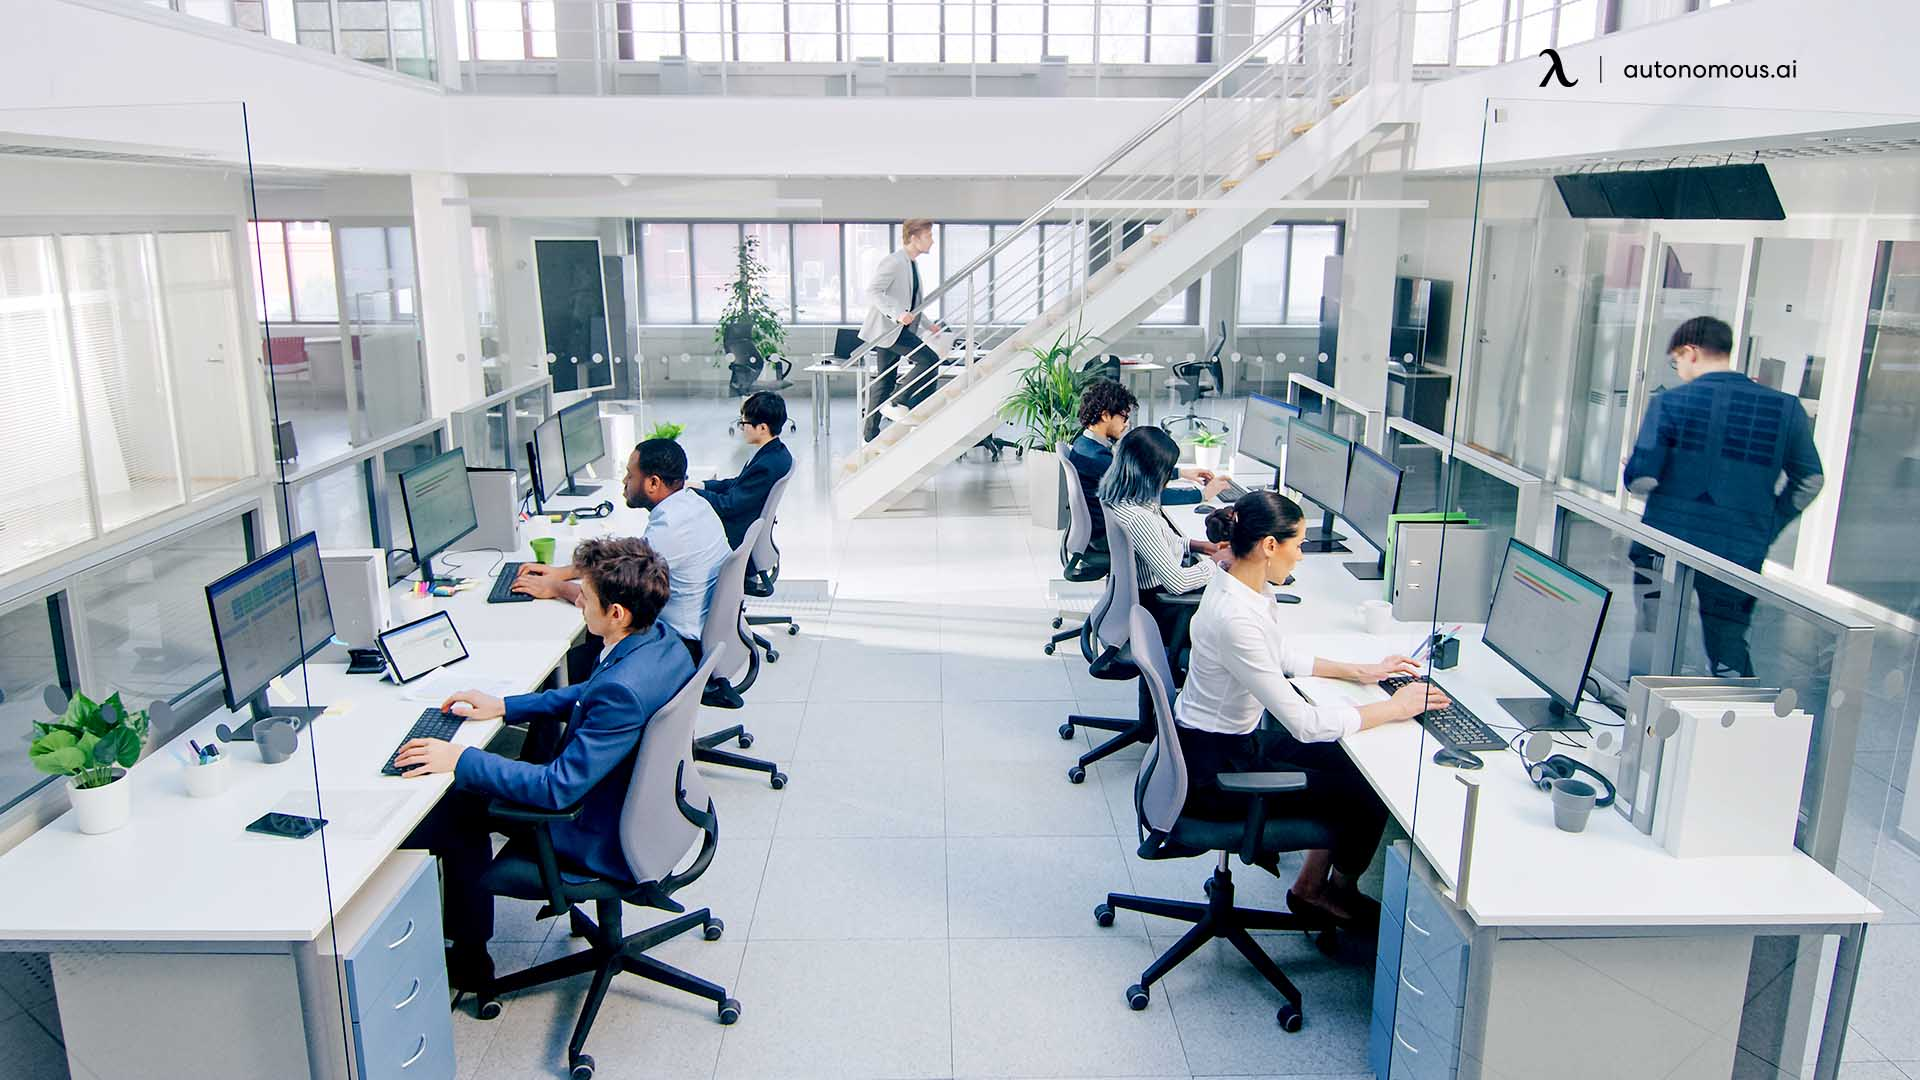 Automation hybrid workplace design will take the lead to manage log-ins, find, reserve, and use hot desks across offices